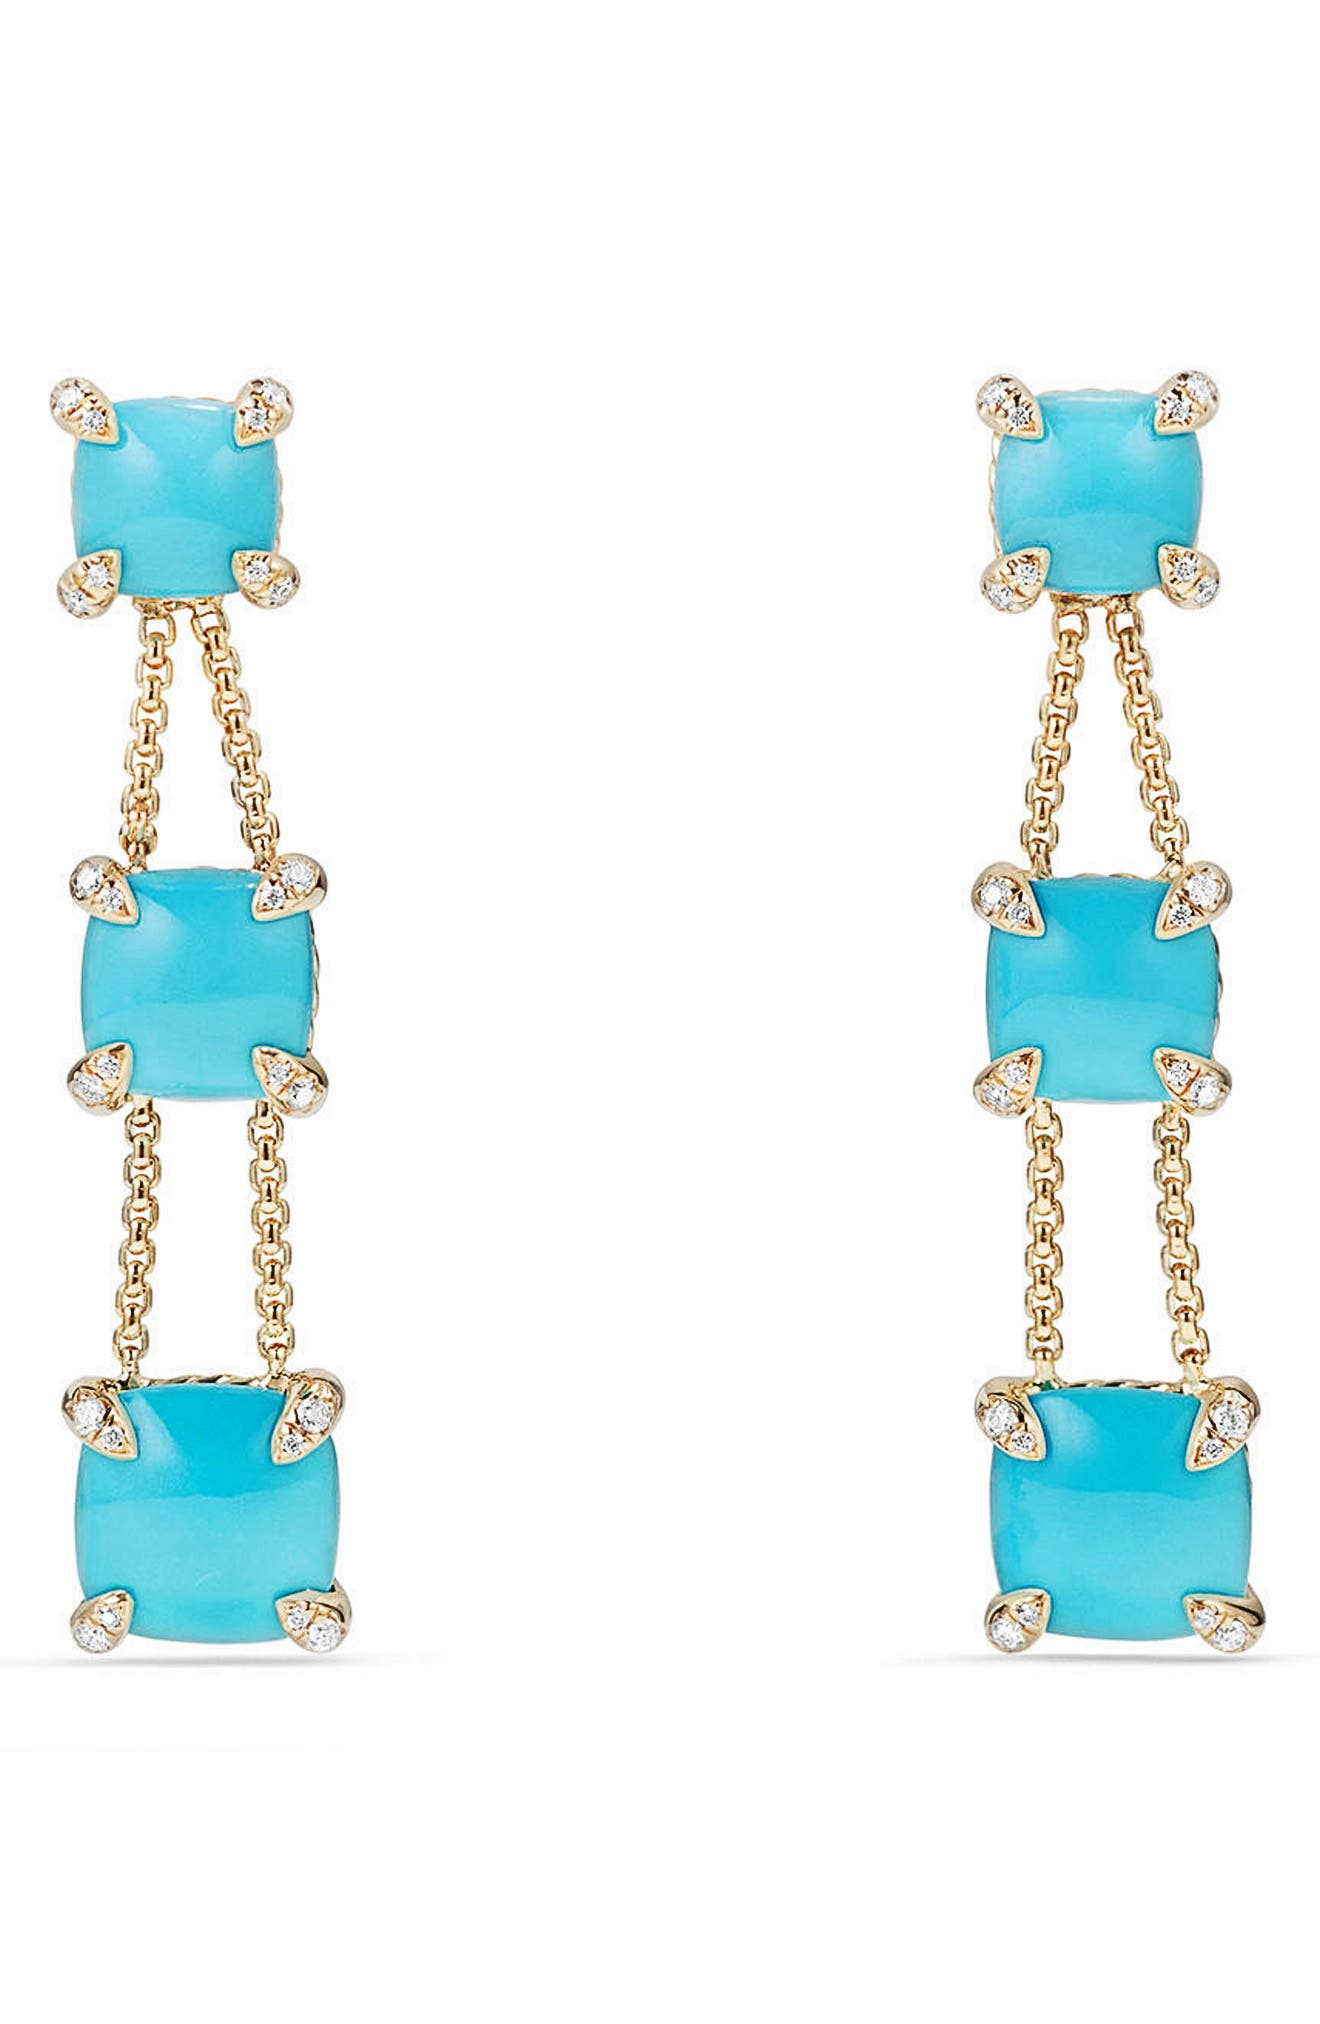 DAVID YURMAN, Châtelaine Linear Chain Earrings in 18K Gold with Semiprecious Stone and Diamonds, Main thumbnail 1, color, 445